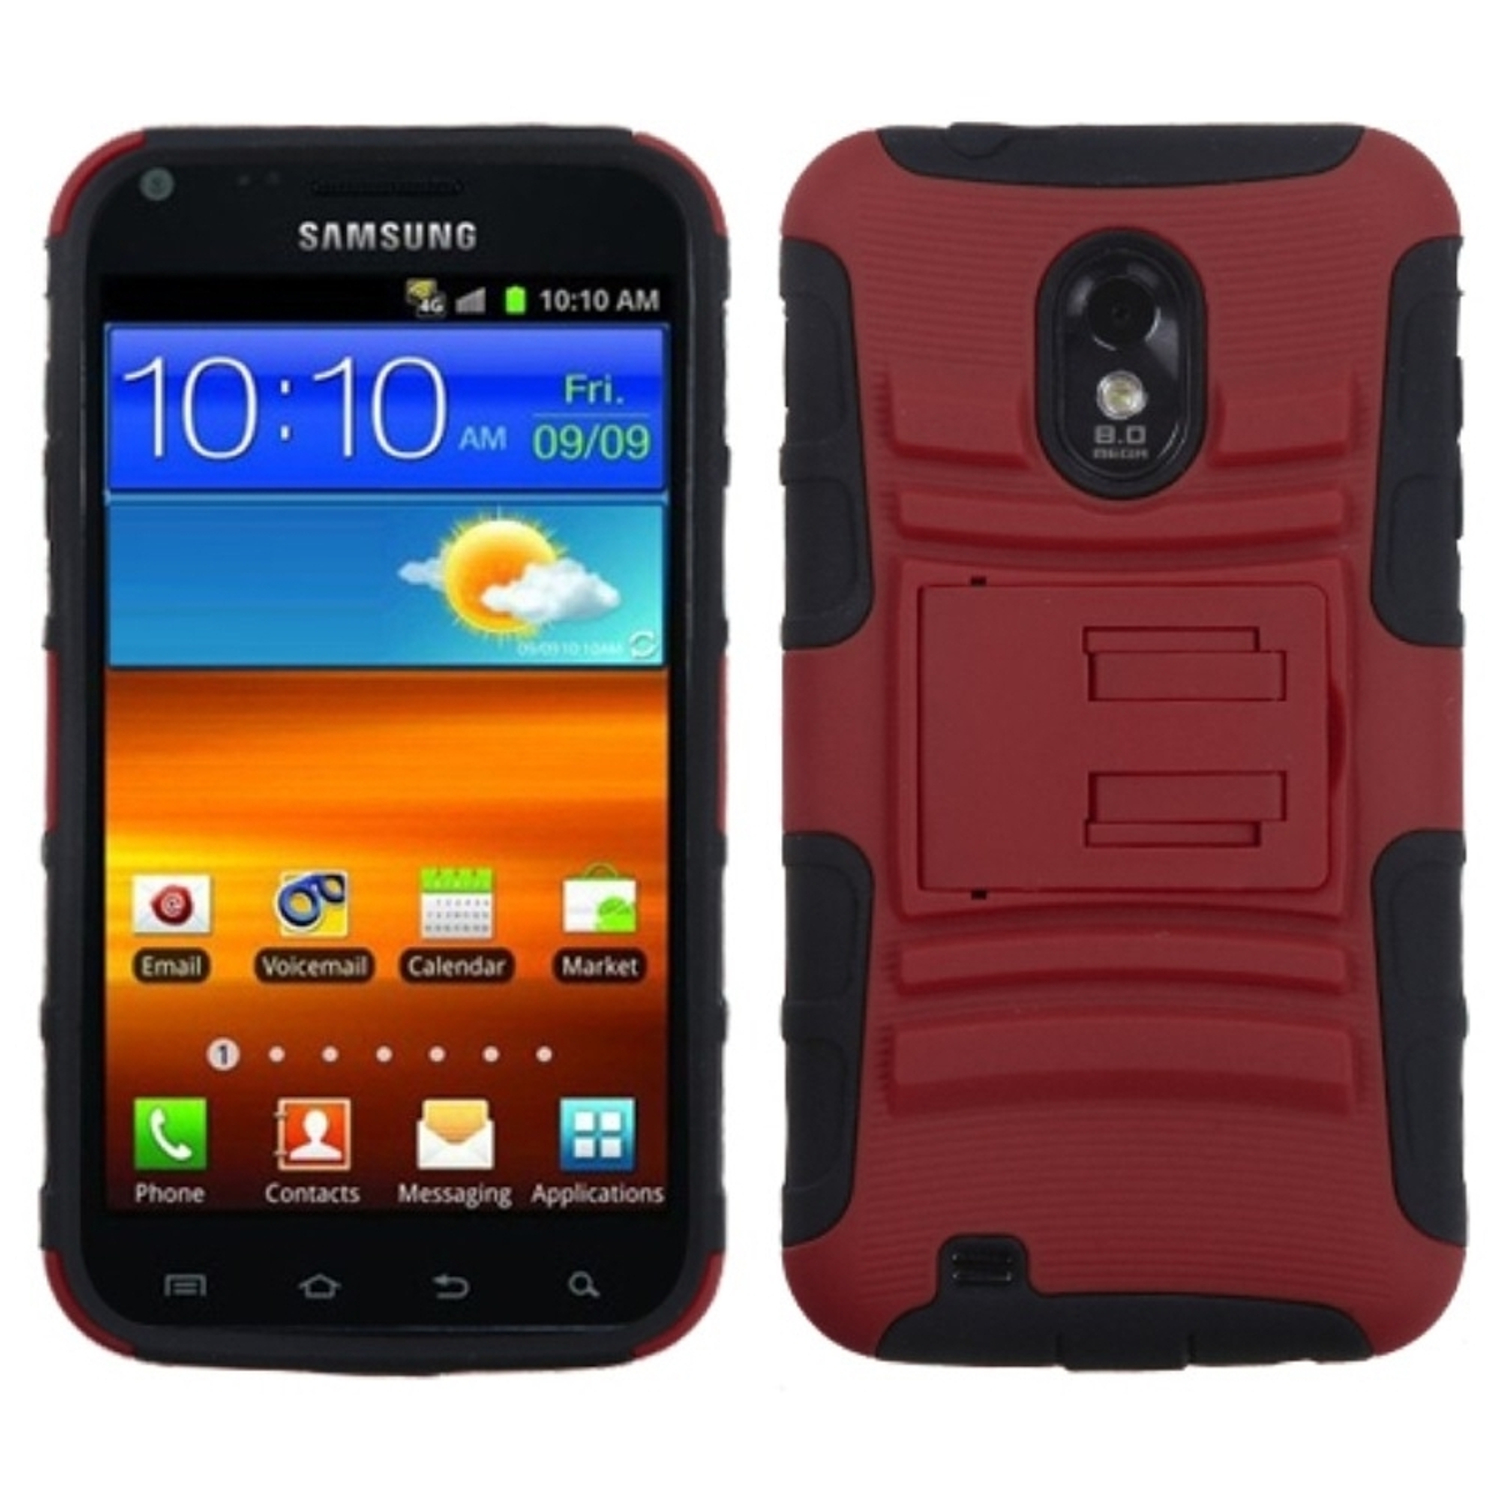 Insten Red/Black Advanced Armor Stand Case for SAMSUNG: D710 (Epic 4G Touch), R760 (Galaxy S II), Galaxy S II 4G